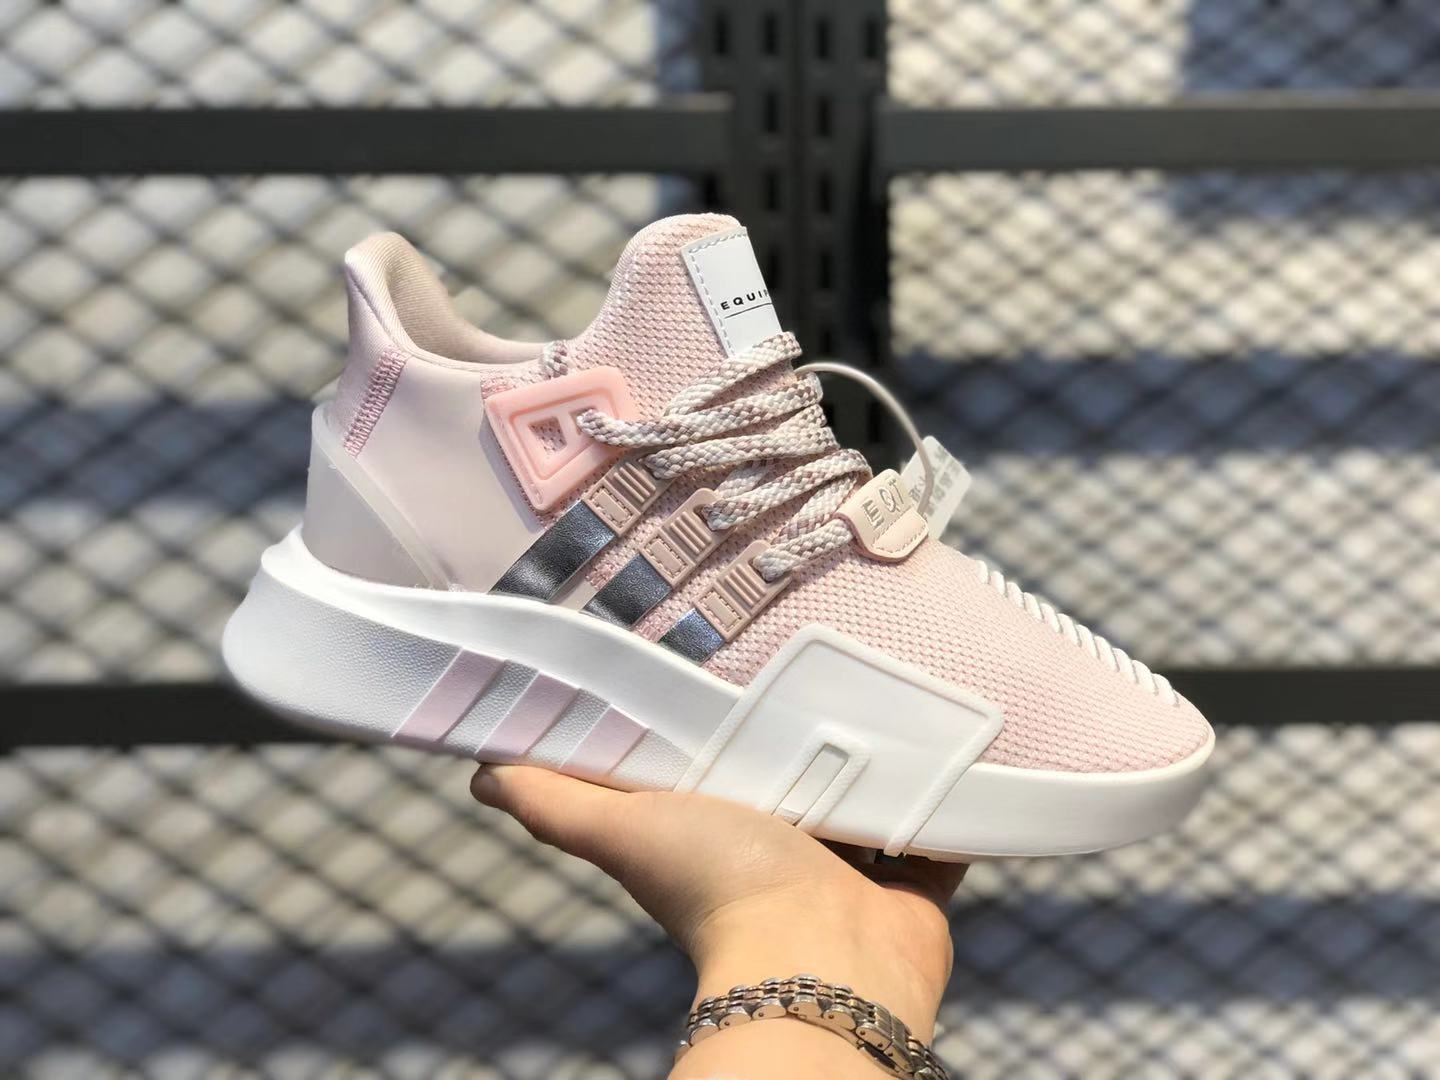 Adidas WMNS EQT Bask ADV Light Pink/White Gold-Metallic Online Buy EE5036